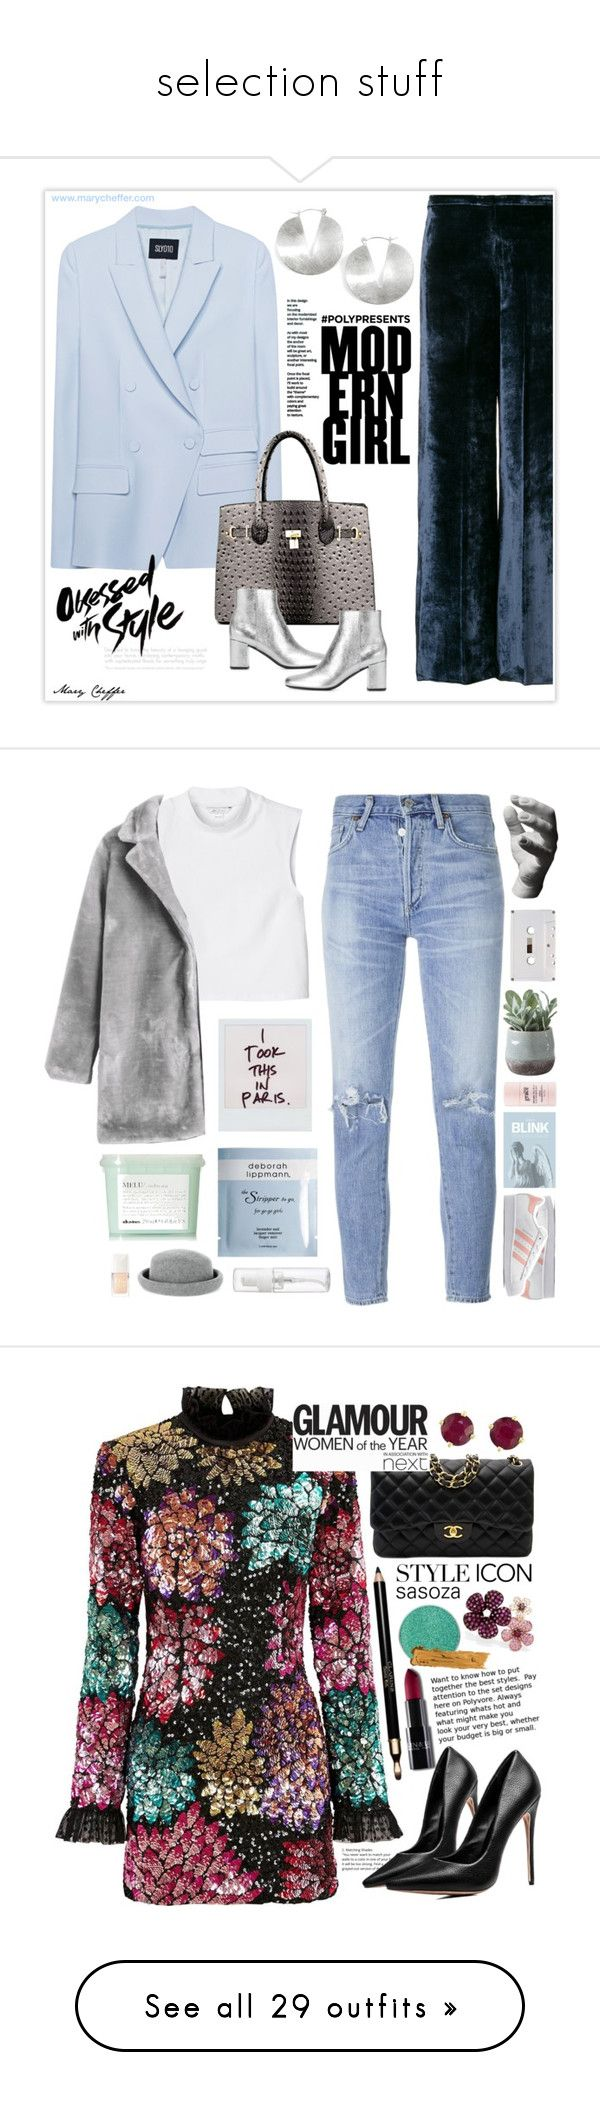 """""""selection stuff"""" by emolgahappy ❤ liked on Polyvore featuring Citizens of Humanity, Monki, Davines, Deborah Lippmann, Warehouse, Christian Dior, adidas Originals, philosophy, Torre & Tagus and Harry Allen"""